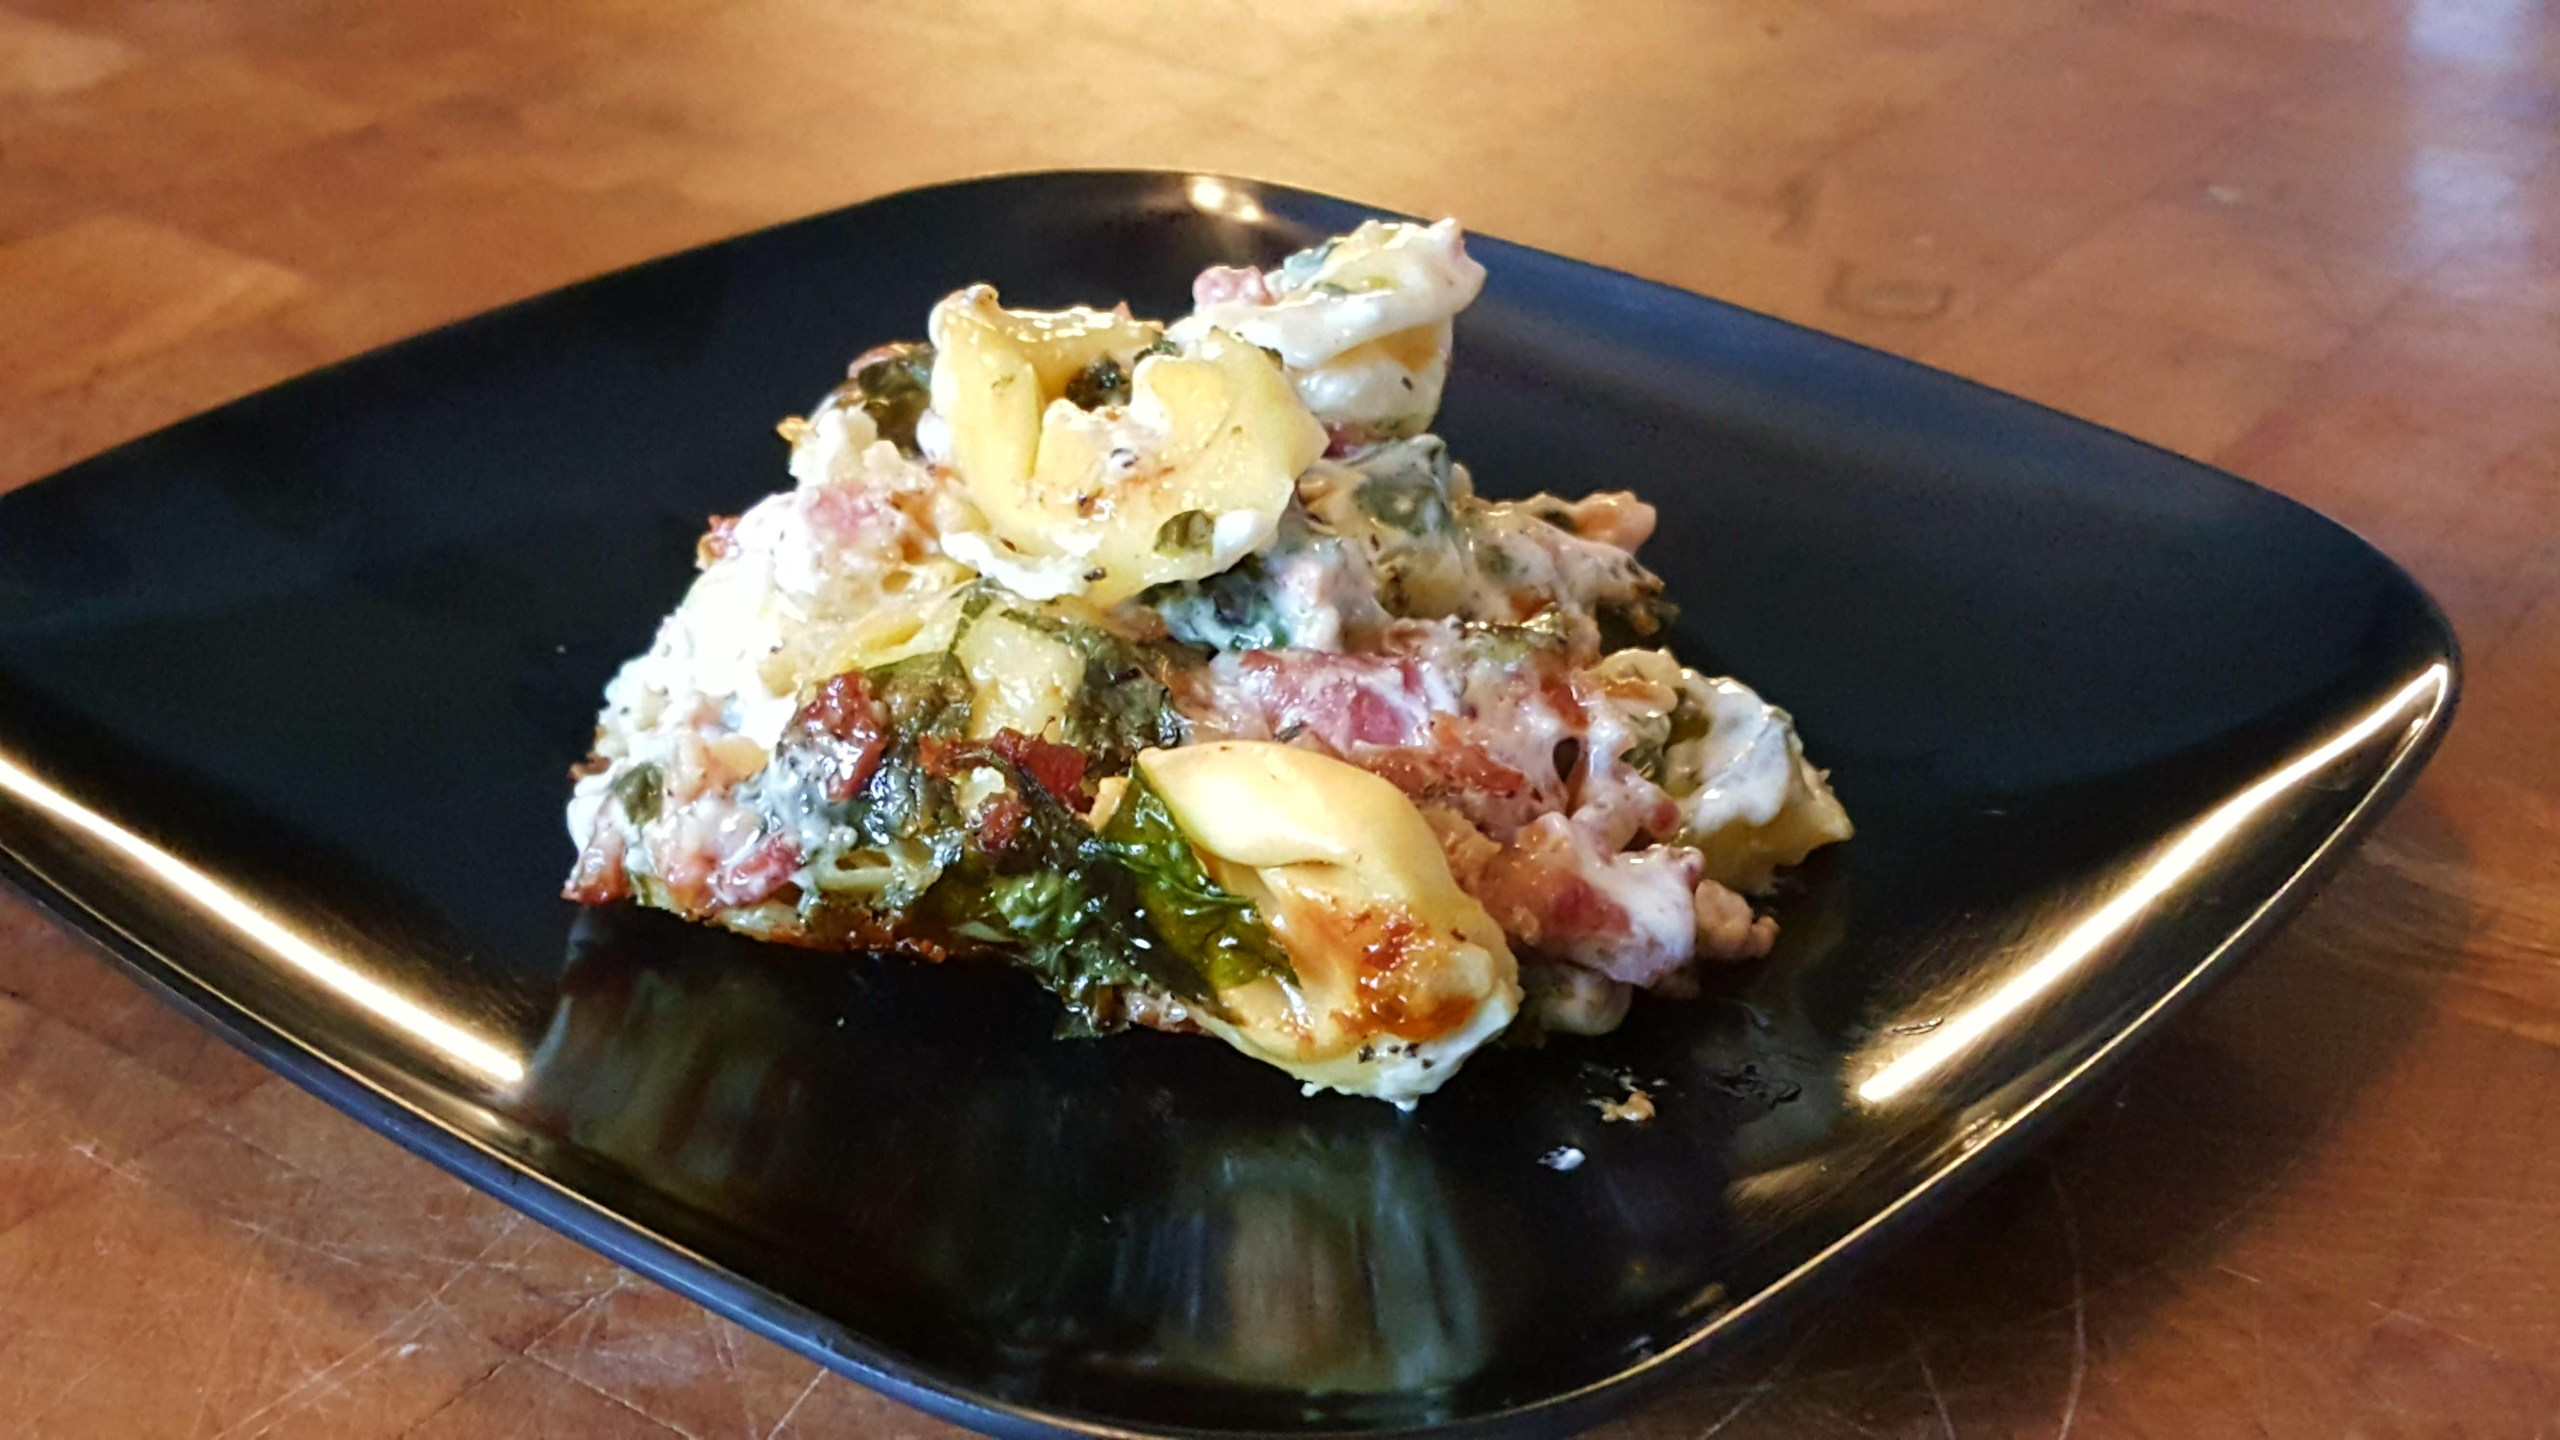 Spinach and Bacon Tortellini Bake_1534770651185.jpg.jpg